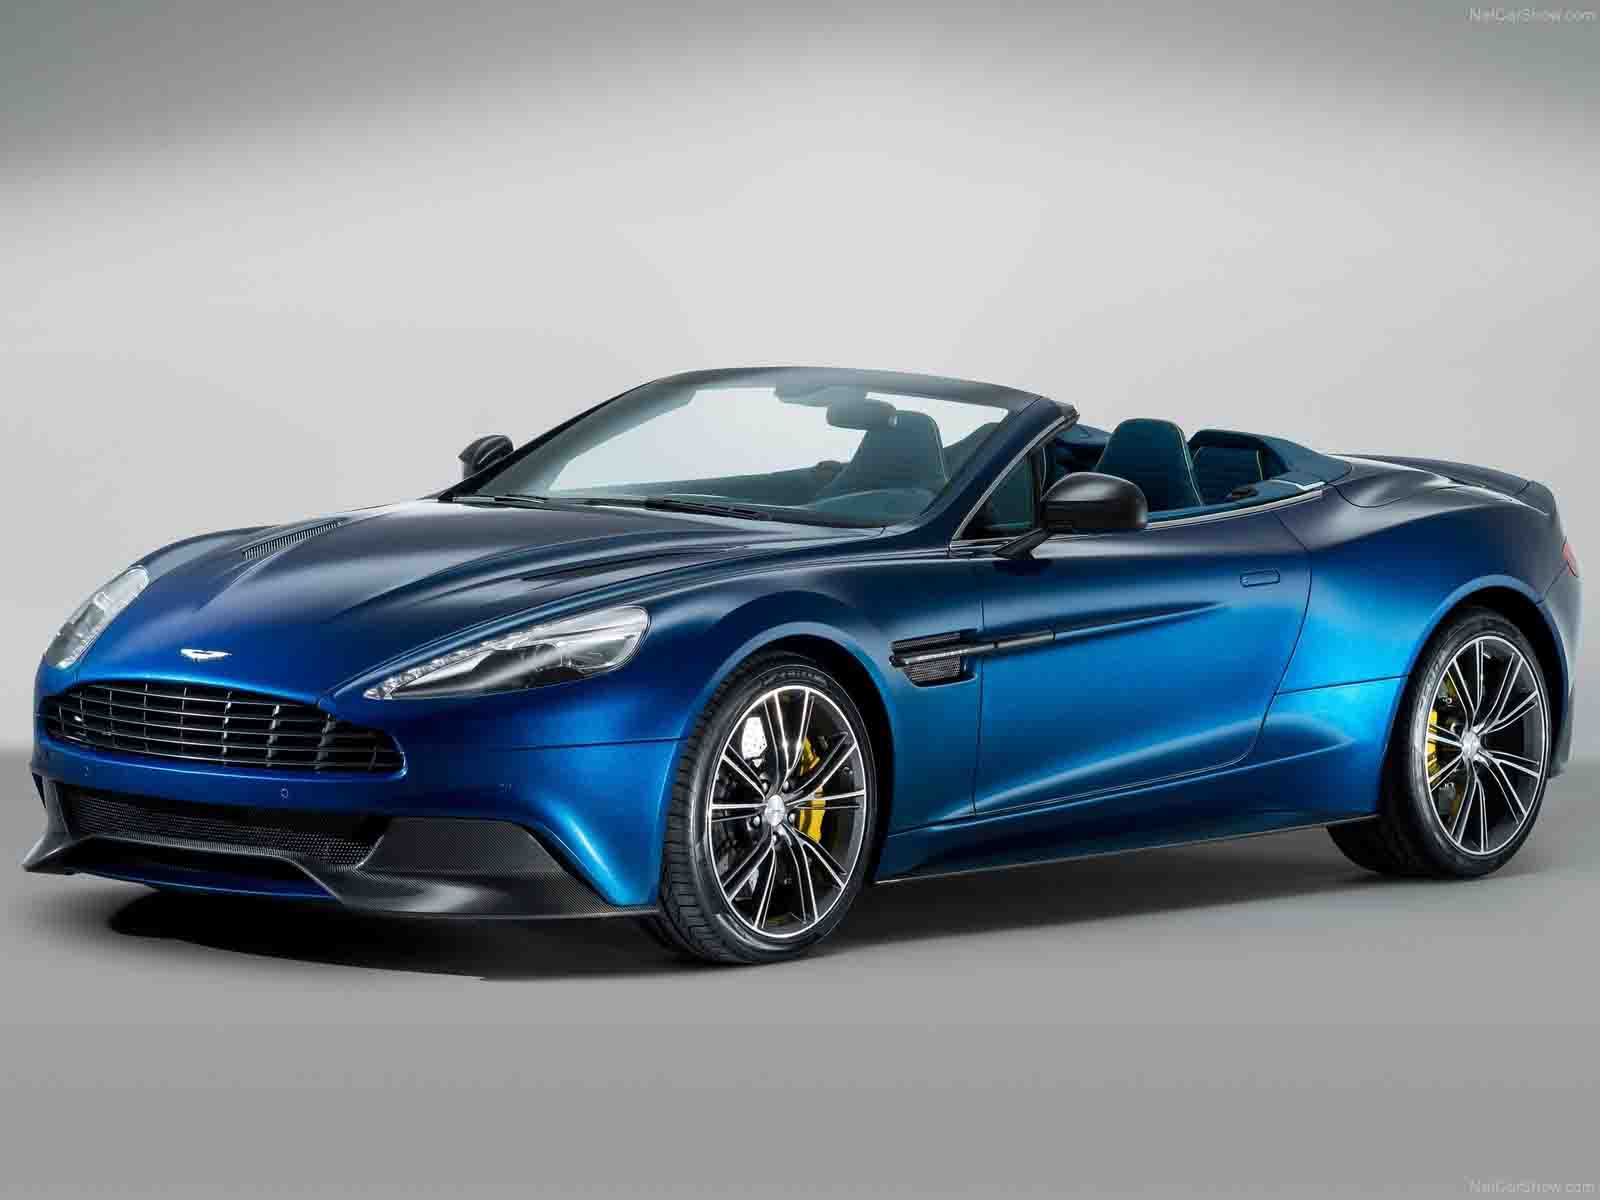 aston martin v12 vanquish india price review images aston martin cars. Black Bedroom Furniture Sets. Home Design Ideas